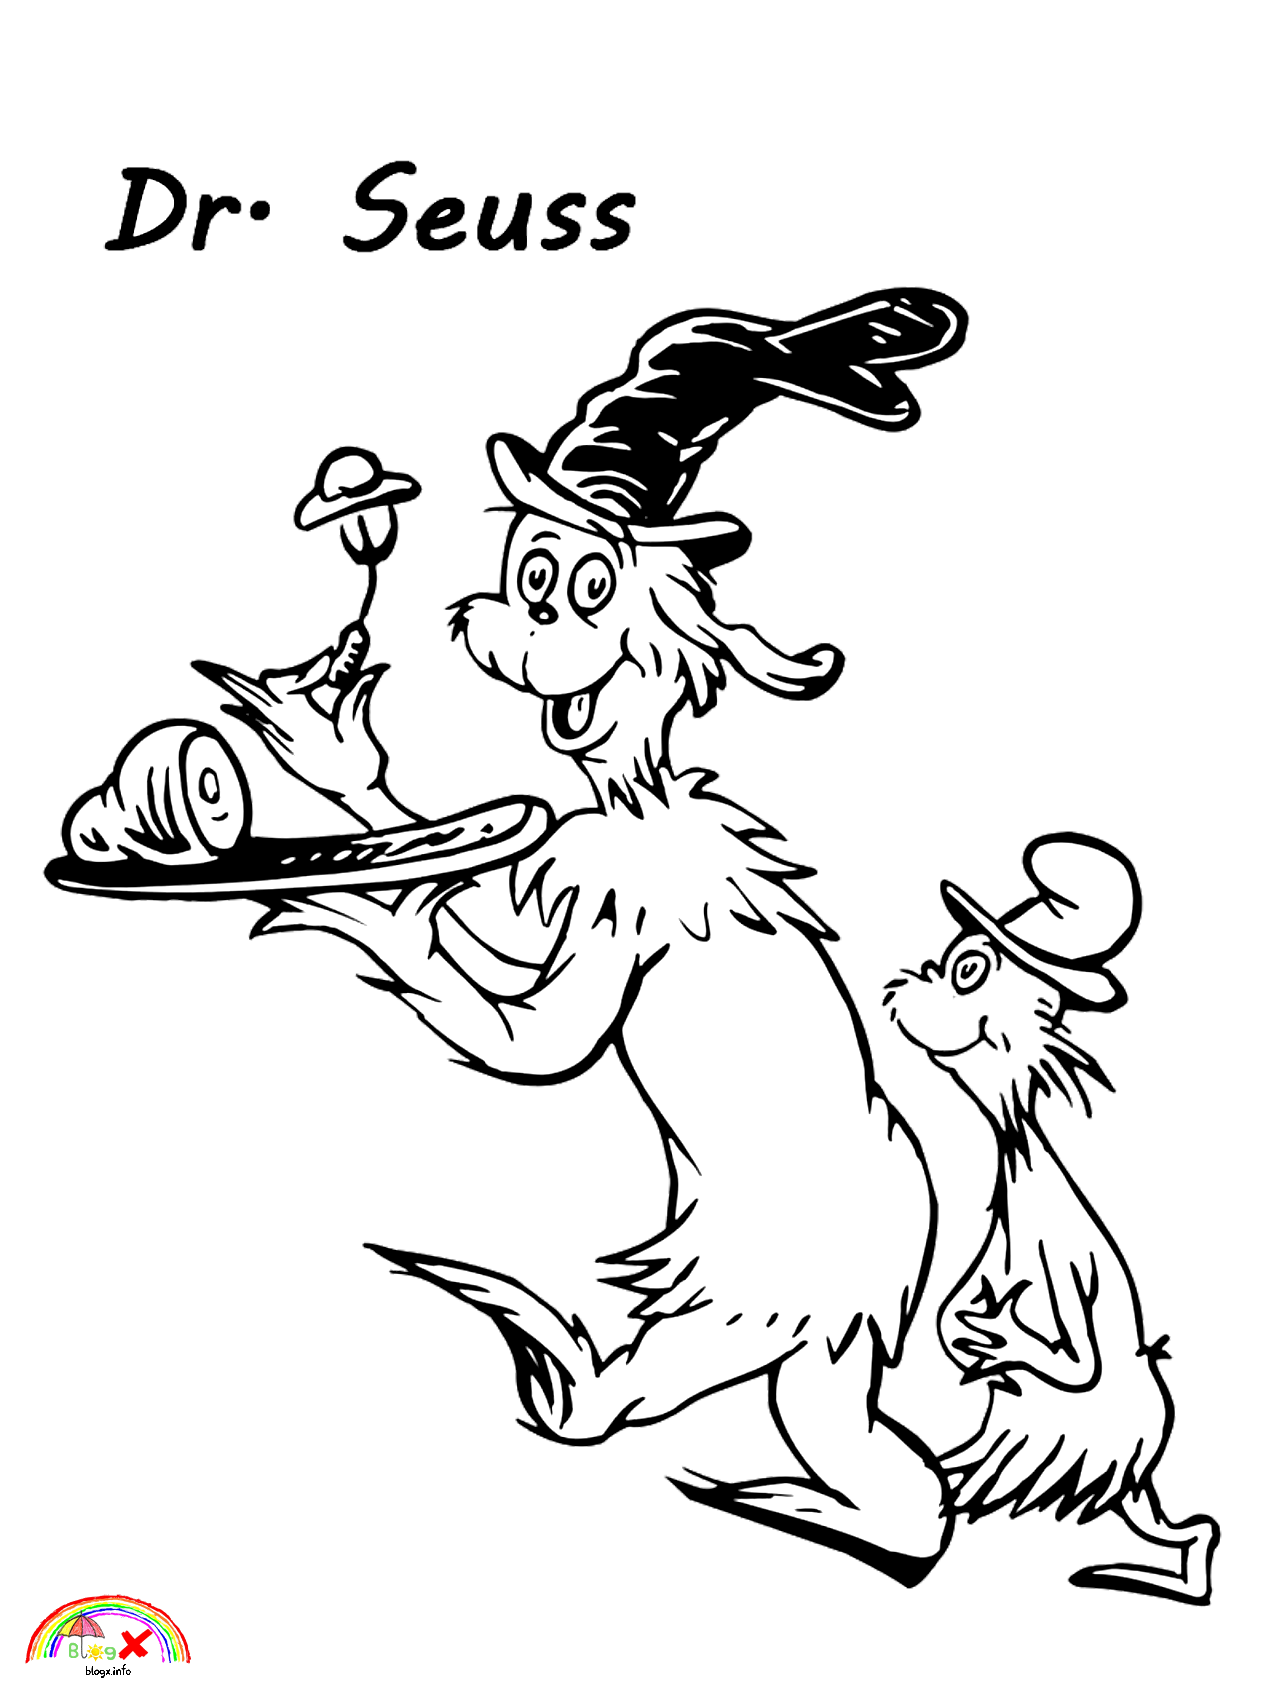 green eggs and ham coloring pages green eggs and ham coloring pages for free usage ham pages eggs green and coloring